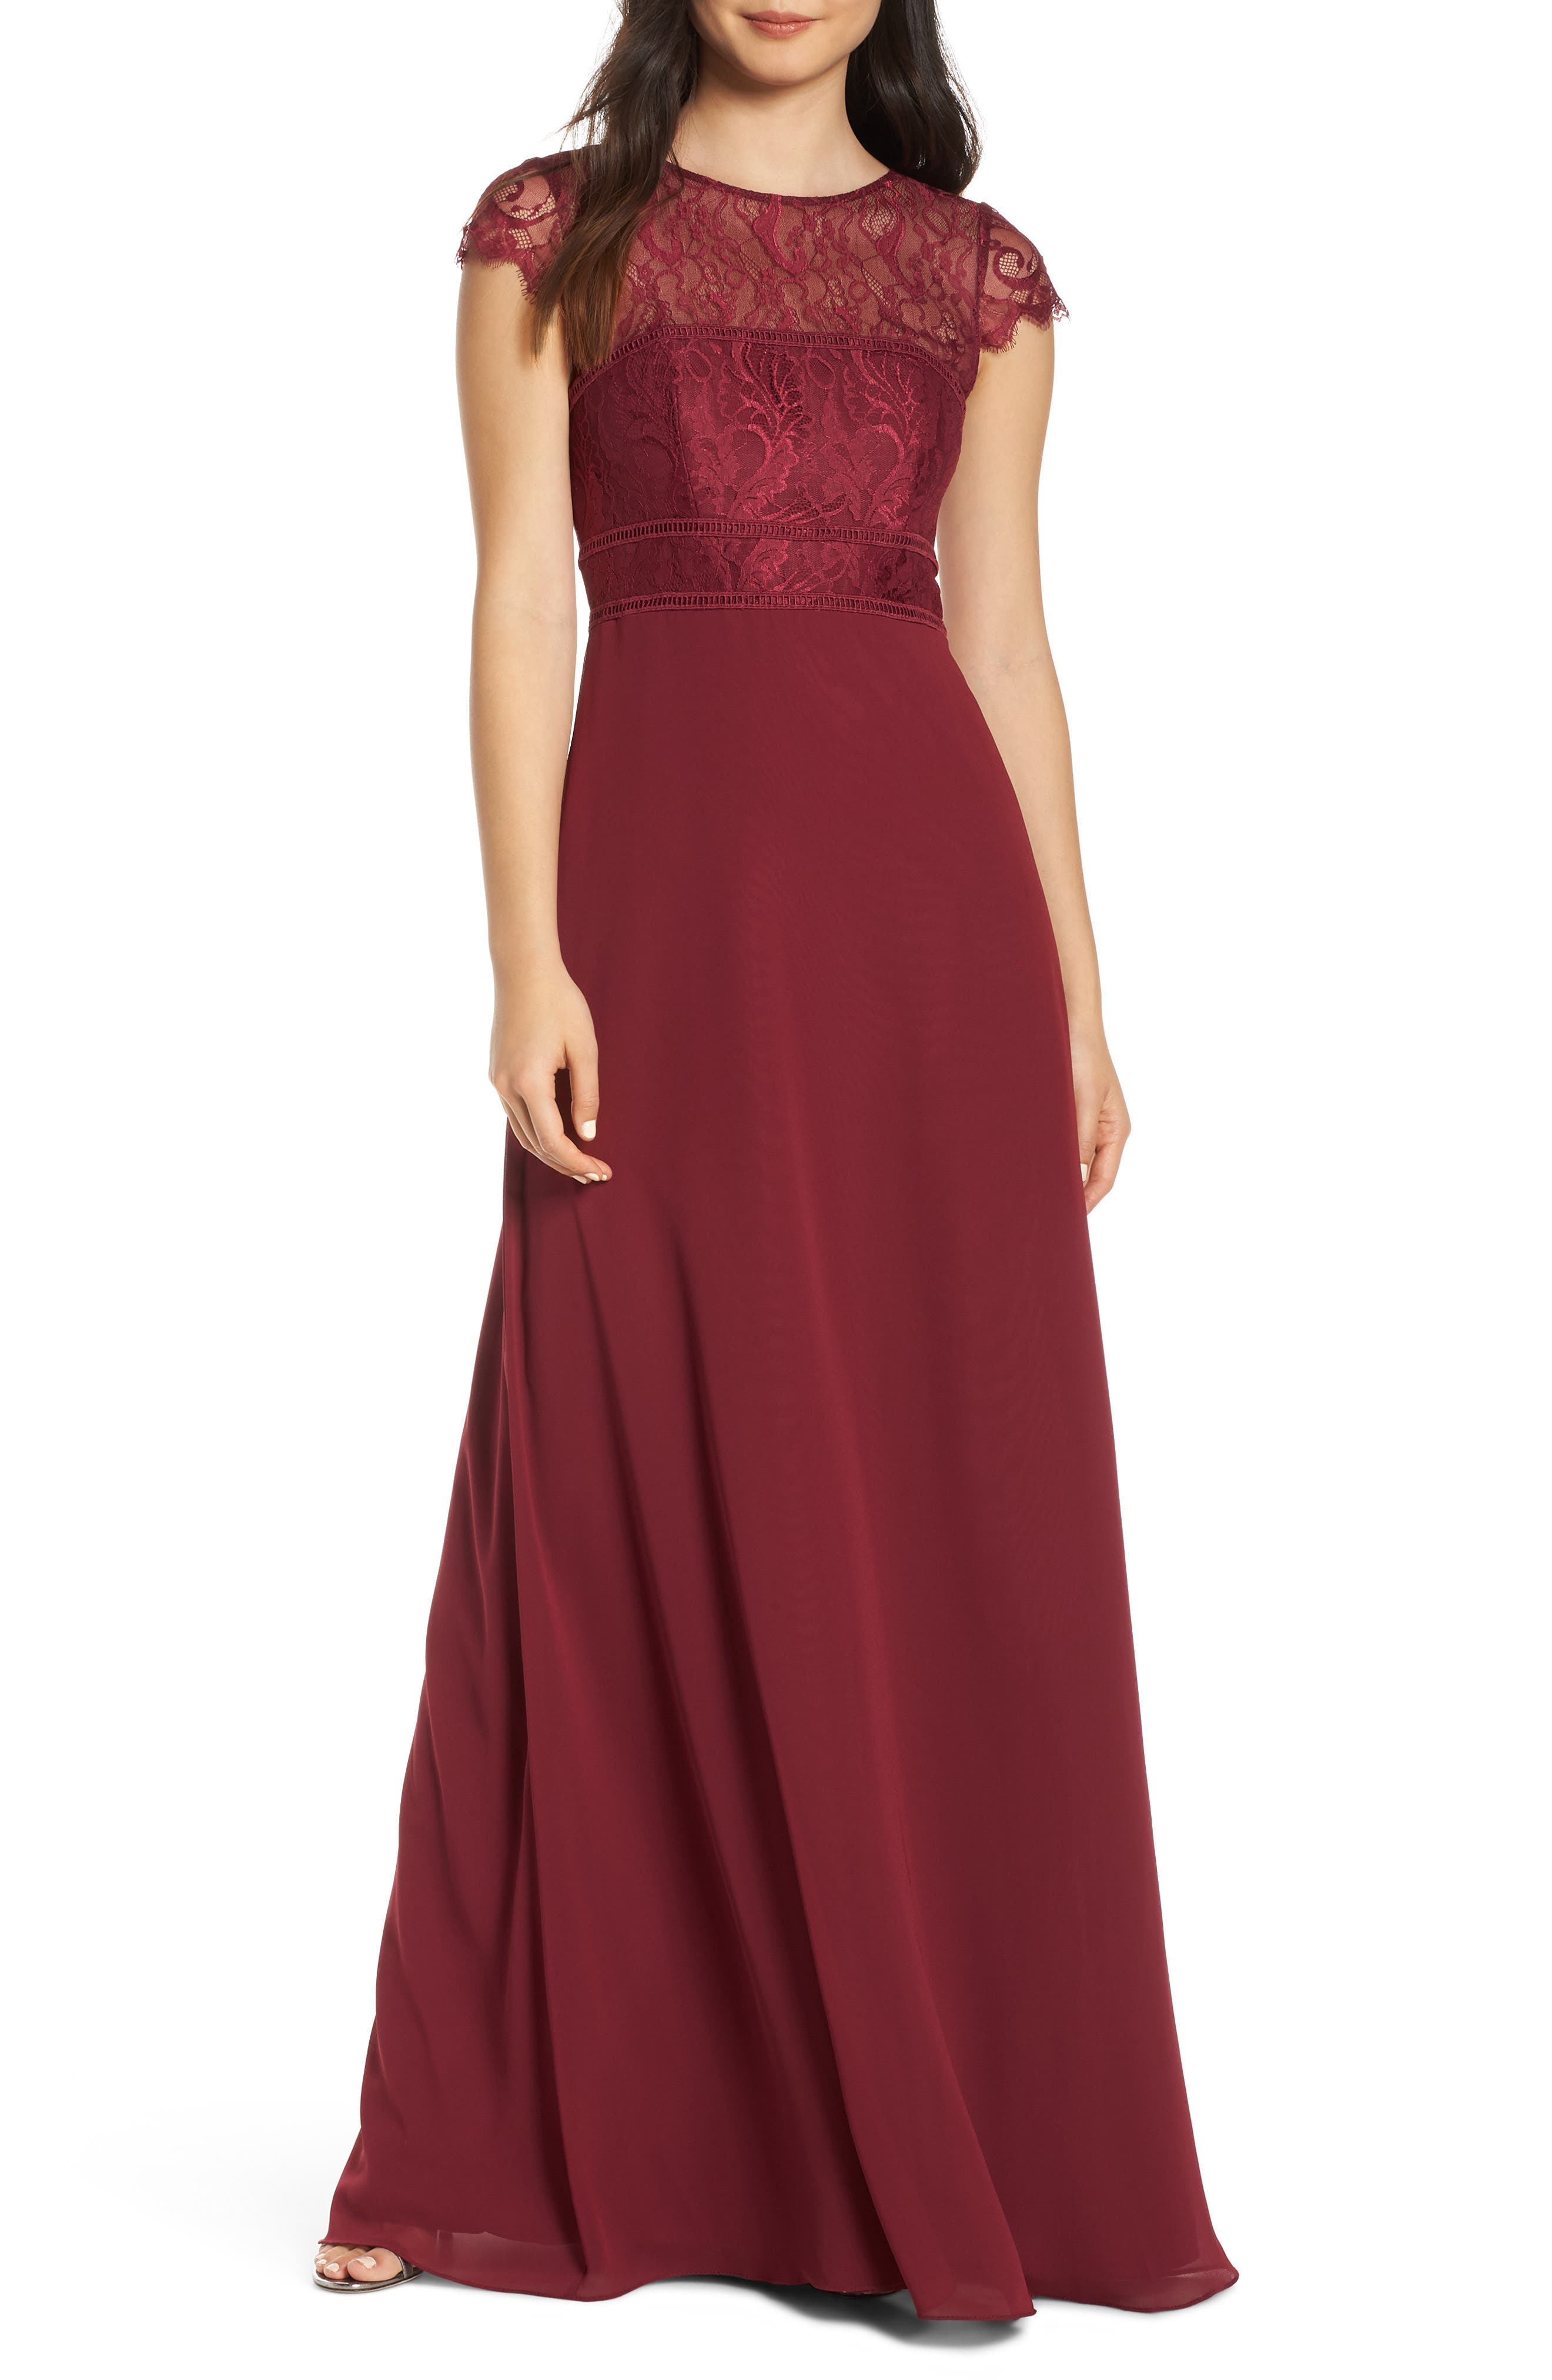 5c1af8a4913 Hayley Paige Occasions Lace Bodice Chiffon Evening Dress